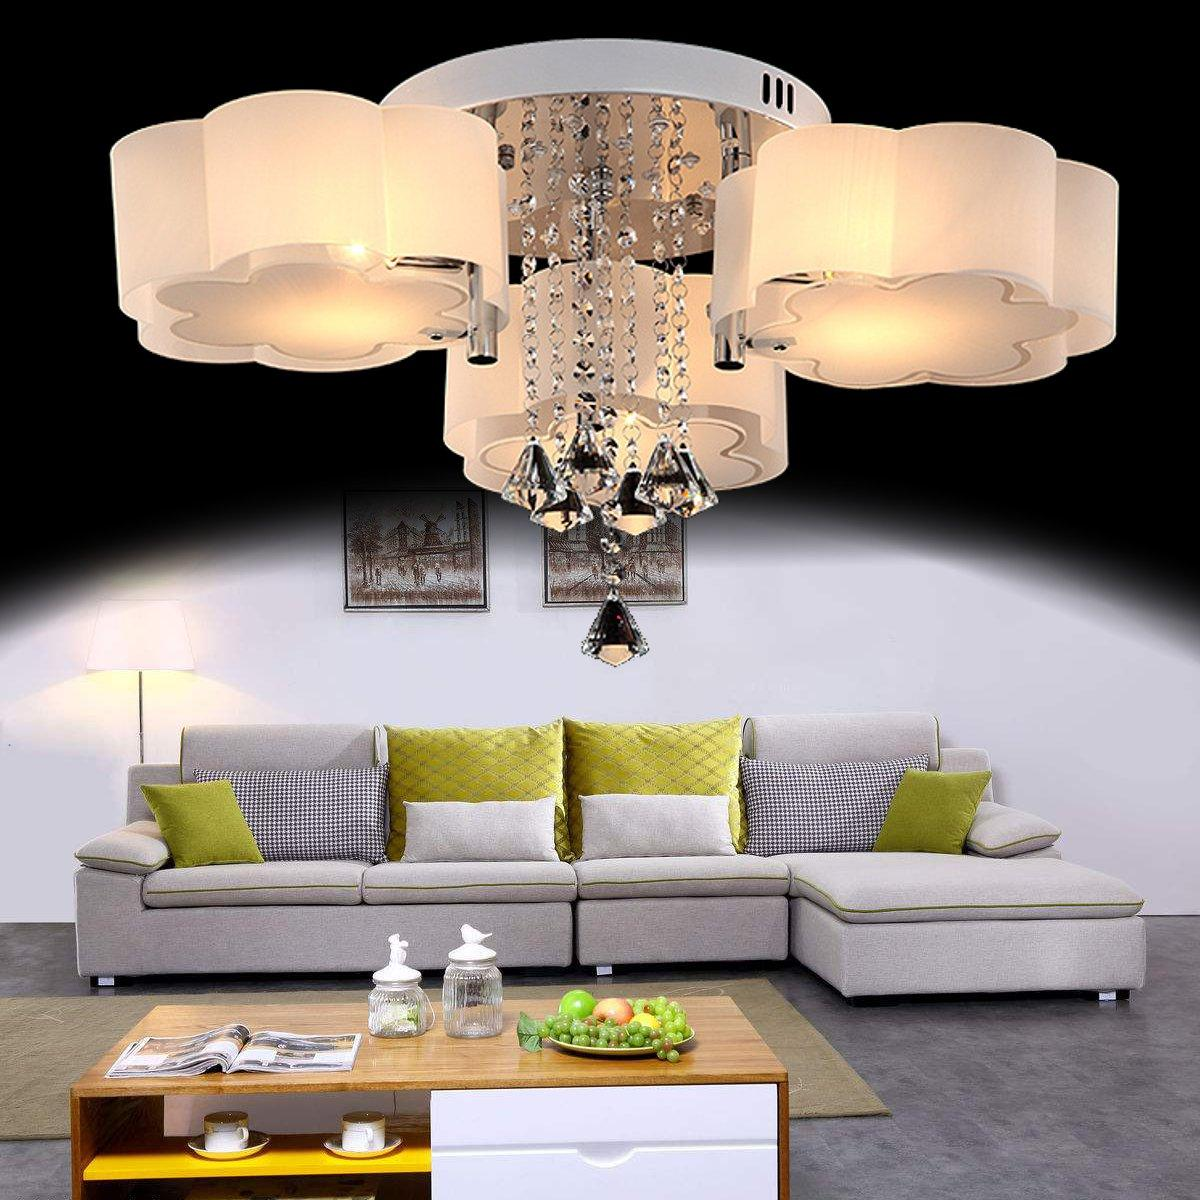 Ceiling Lights For Sale Chandelier Prices Brands Review Room Cage Light Vintage Retro On Wiring Led Modern Crystal Shade Living Bedroom Lobby Pendant Lamp Intl